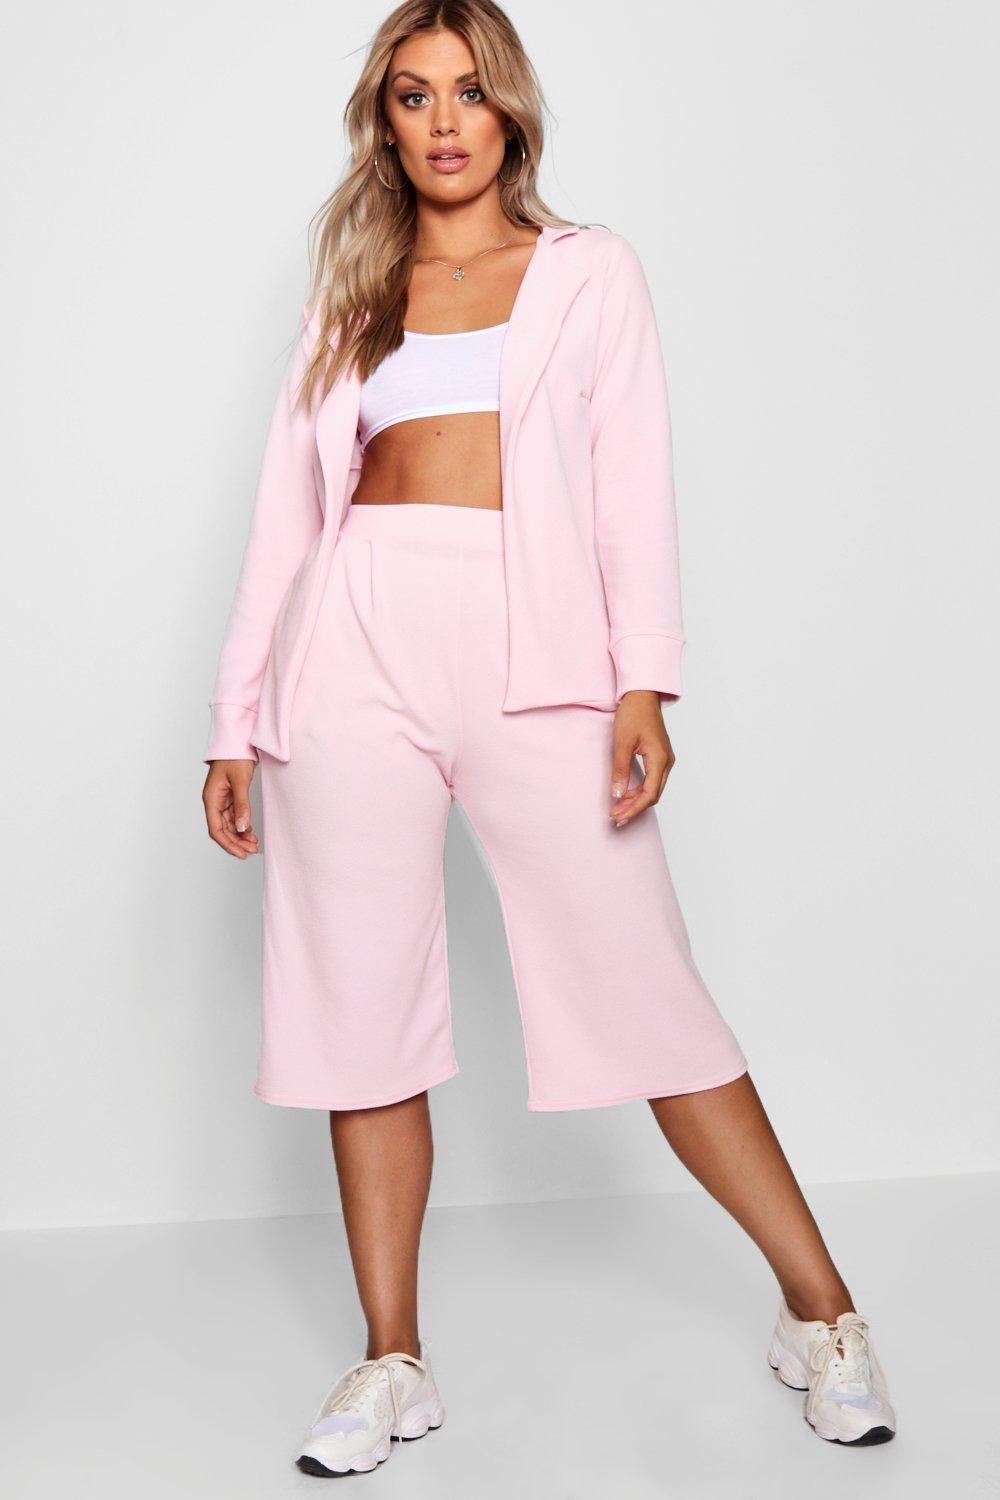 368f9799011 Click here to find out about the Plus Cara Open Blazer Culotte Suit Co-ord  from Boohoo